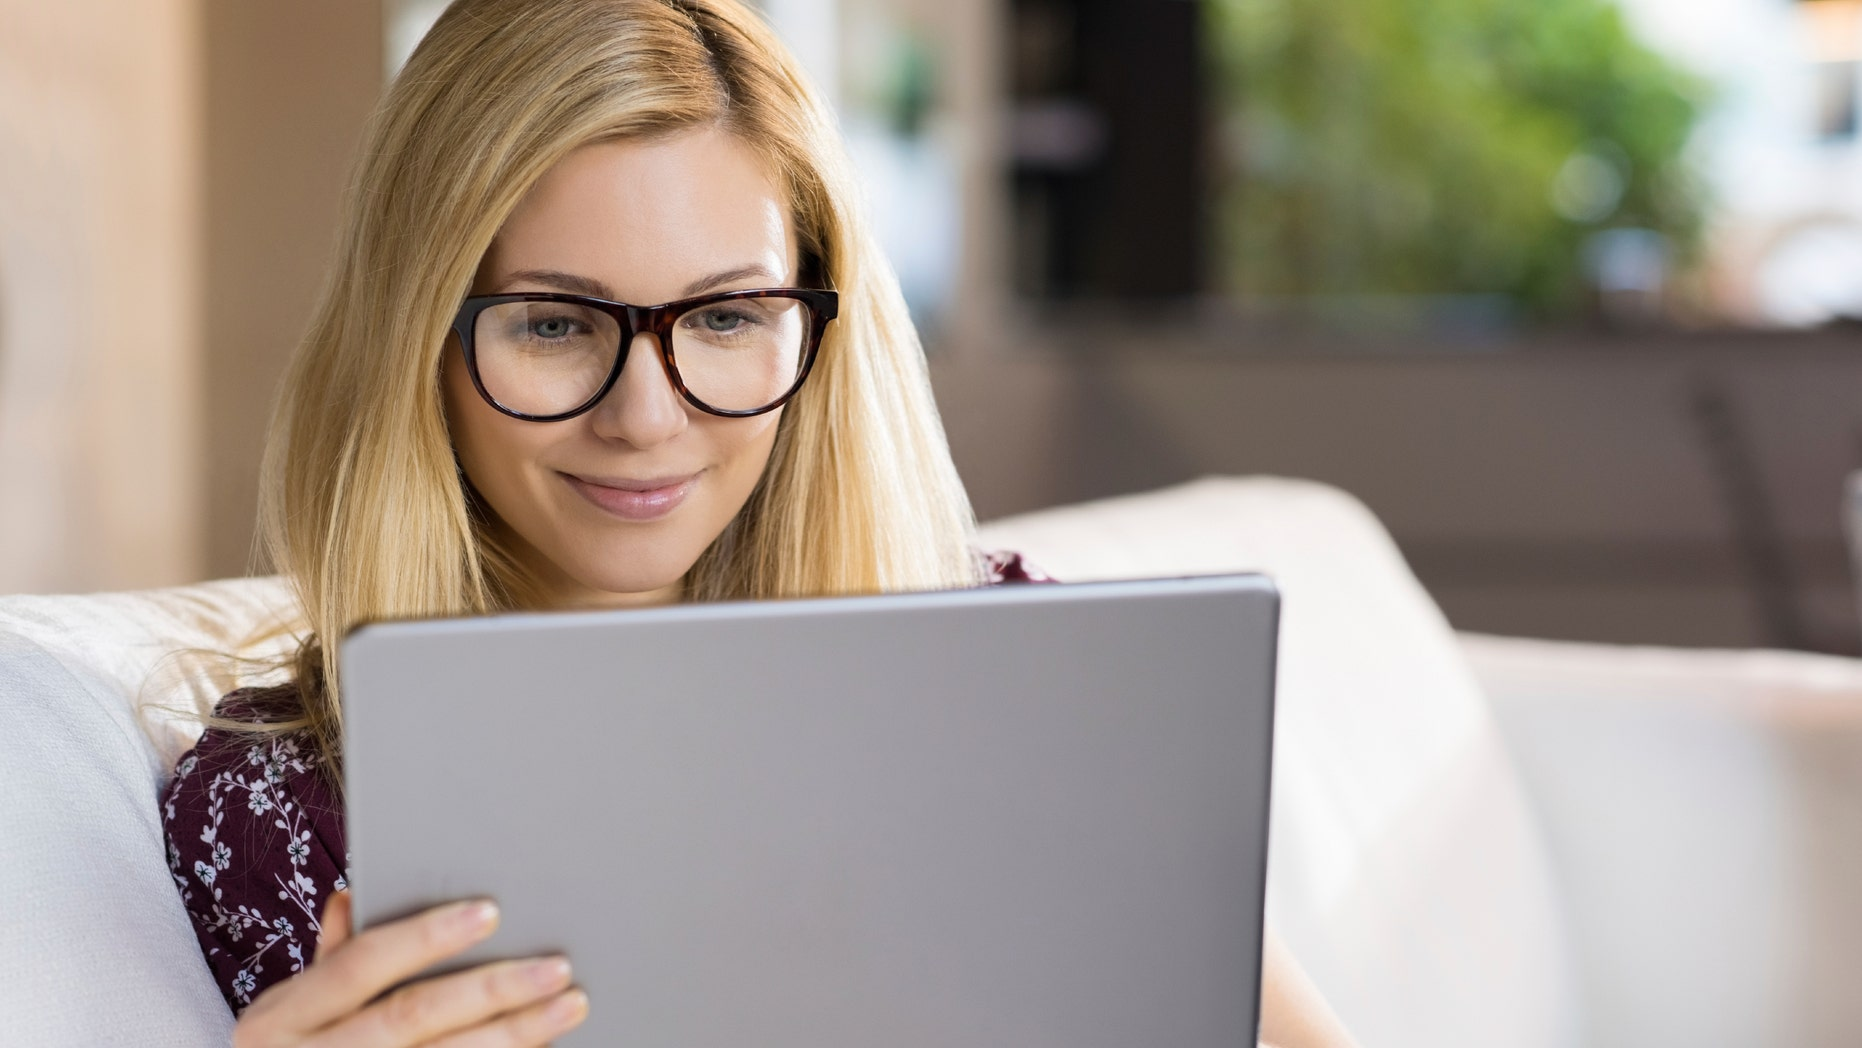 Happy young blonde woman sitting on sofa and using digital tablet. Happy young student with eyeglasses watching a movie on tablet. Female student studying on tablet at home.